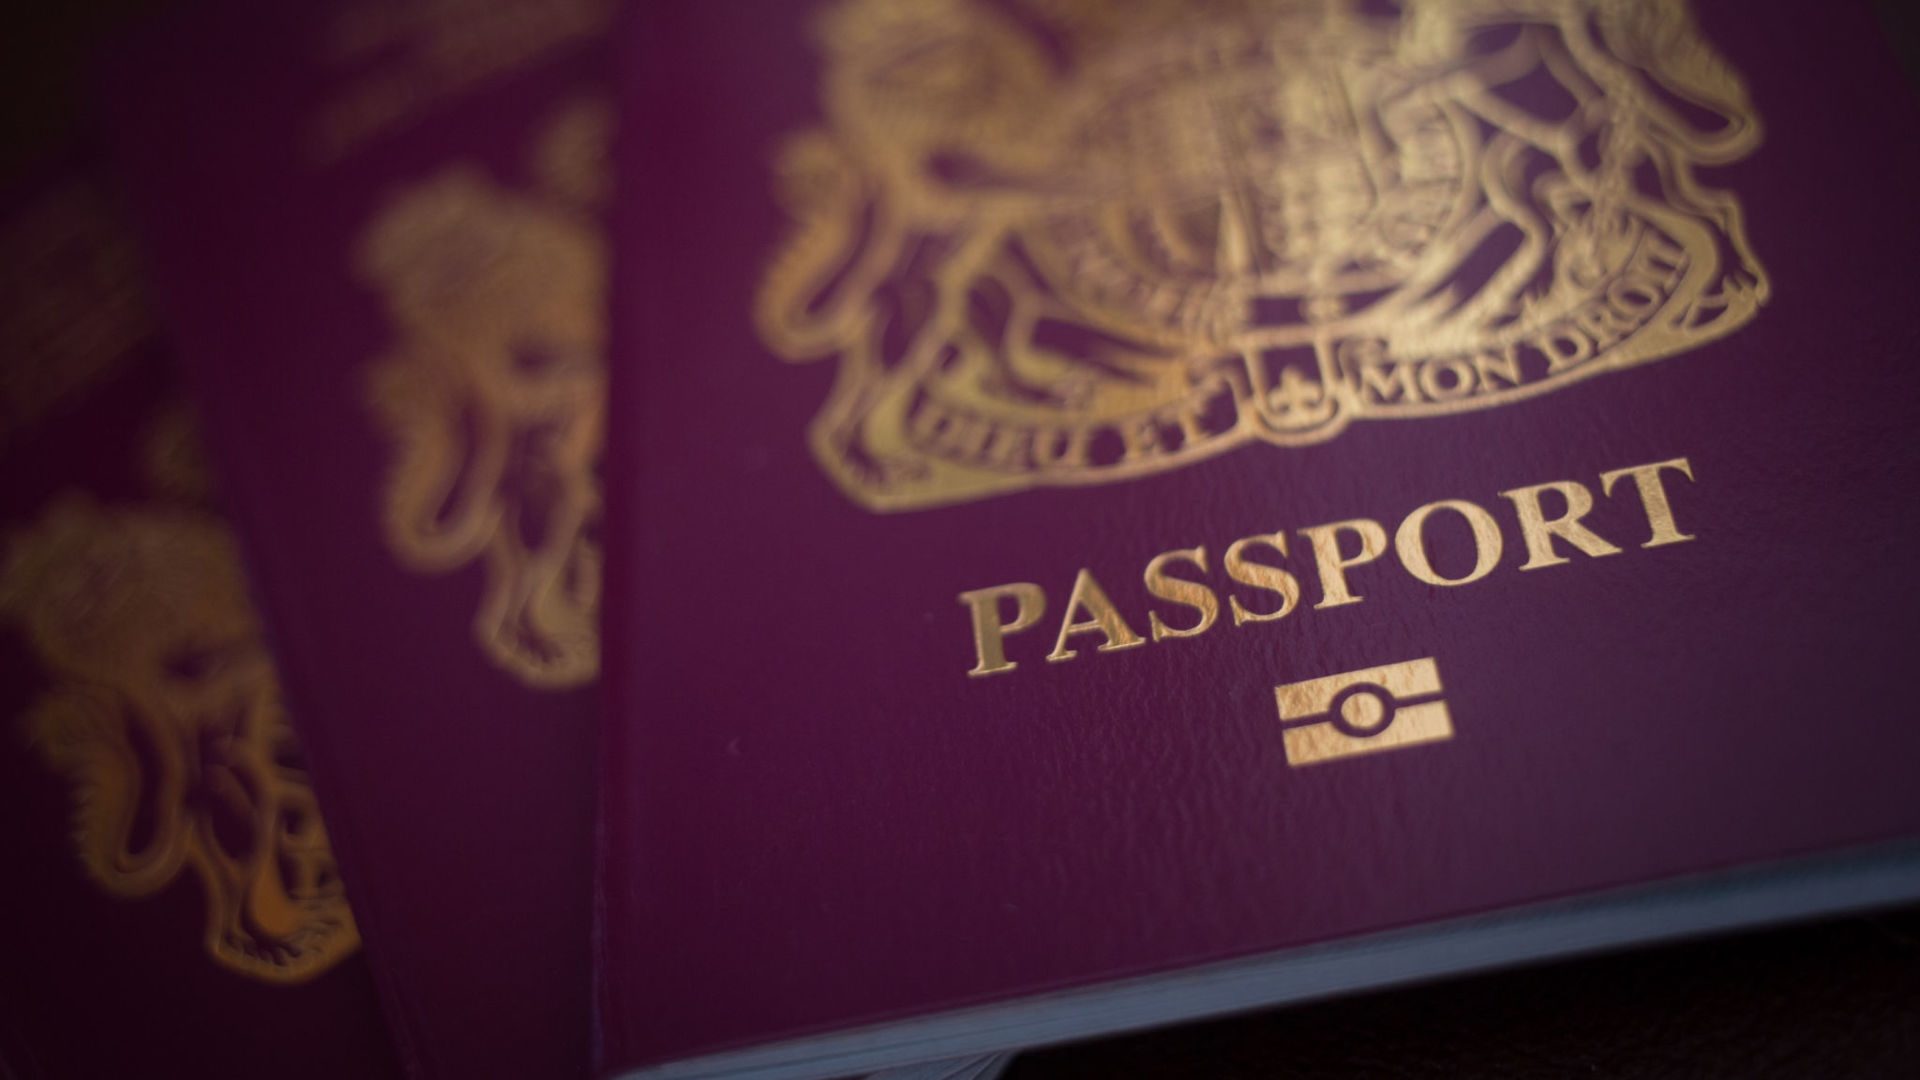 BATH, ENGLAND - OCTOBER 10:  In this photo illustration,  UK passports are seen on October 10, 2016 in Bath, England. Since the UK voted to leave the European Union in June, the UK's currency has been fluctuating in value against other currencies, including the Euro and the dollar, and looks likely to remain doing so while the uncertainty remains surrounding the terms of the UK's departure from the EU.  (Photo by Matt Cardy/Getty Images)